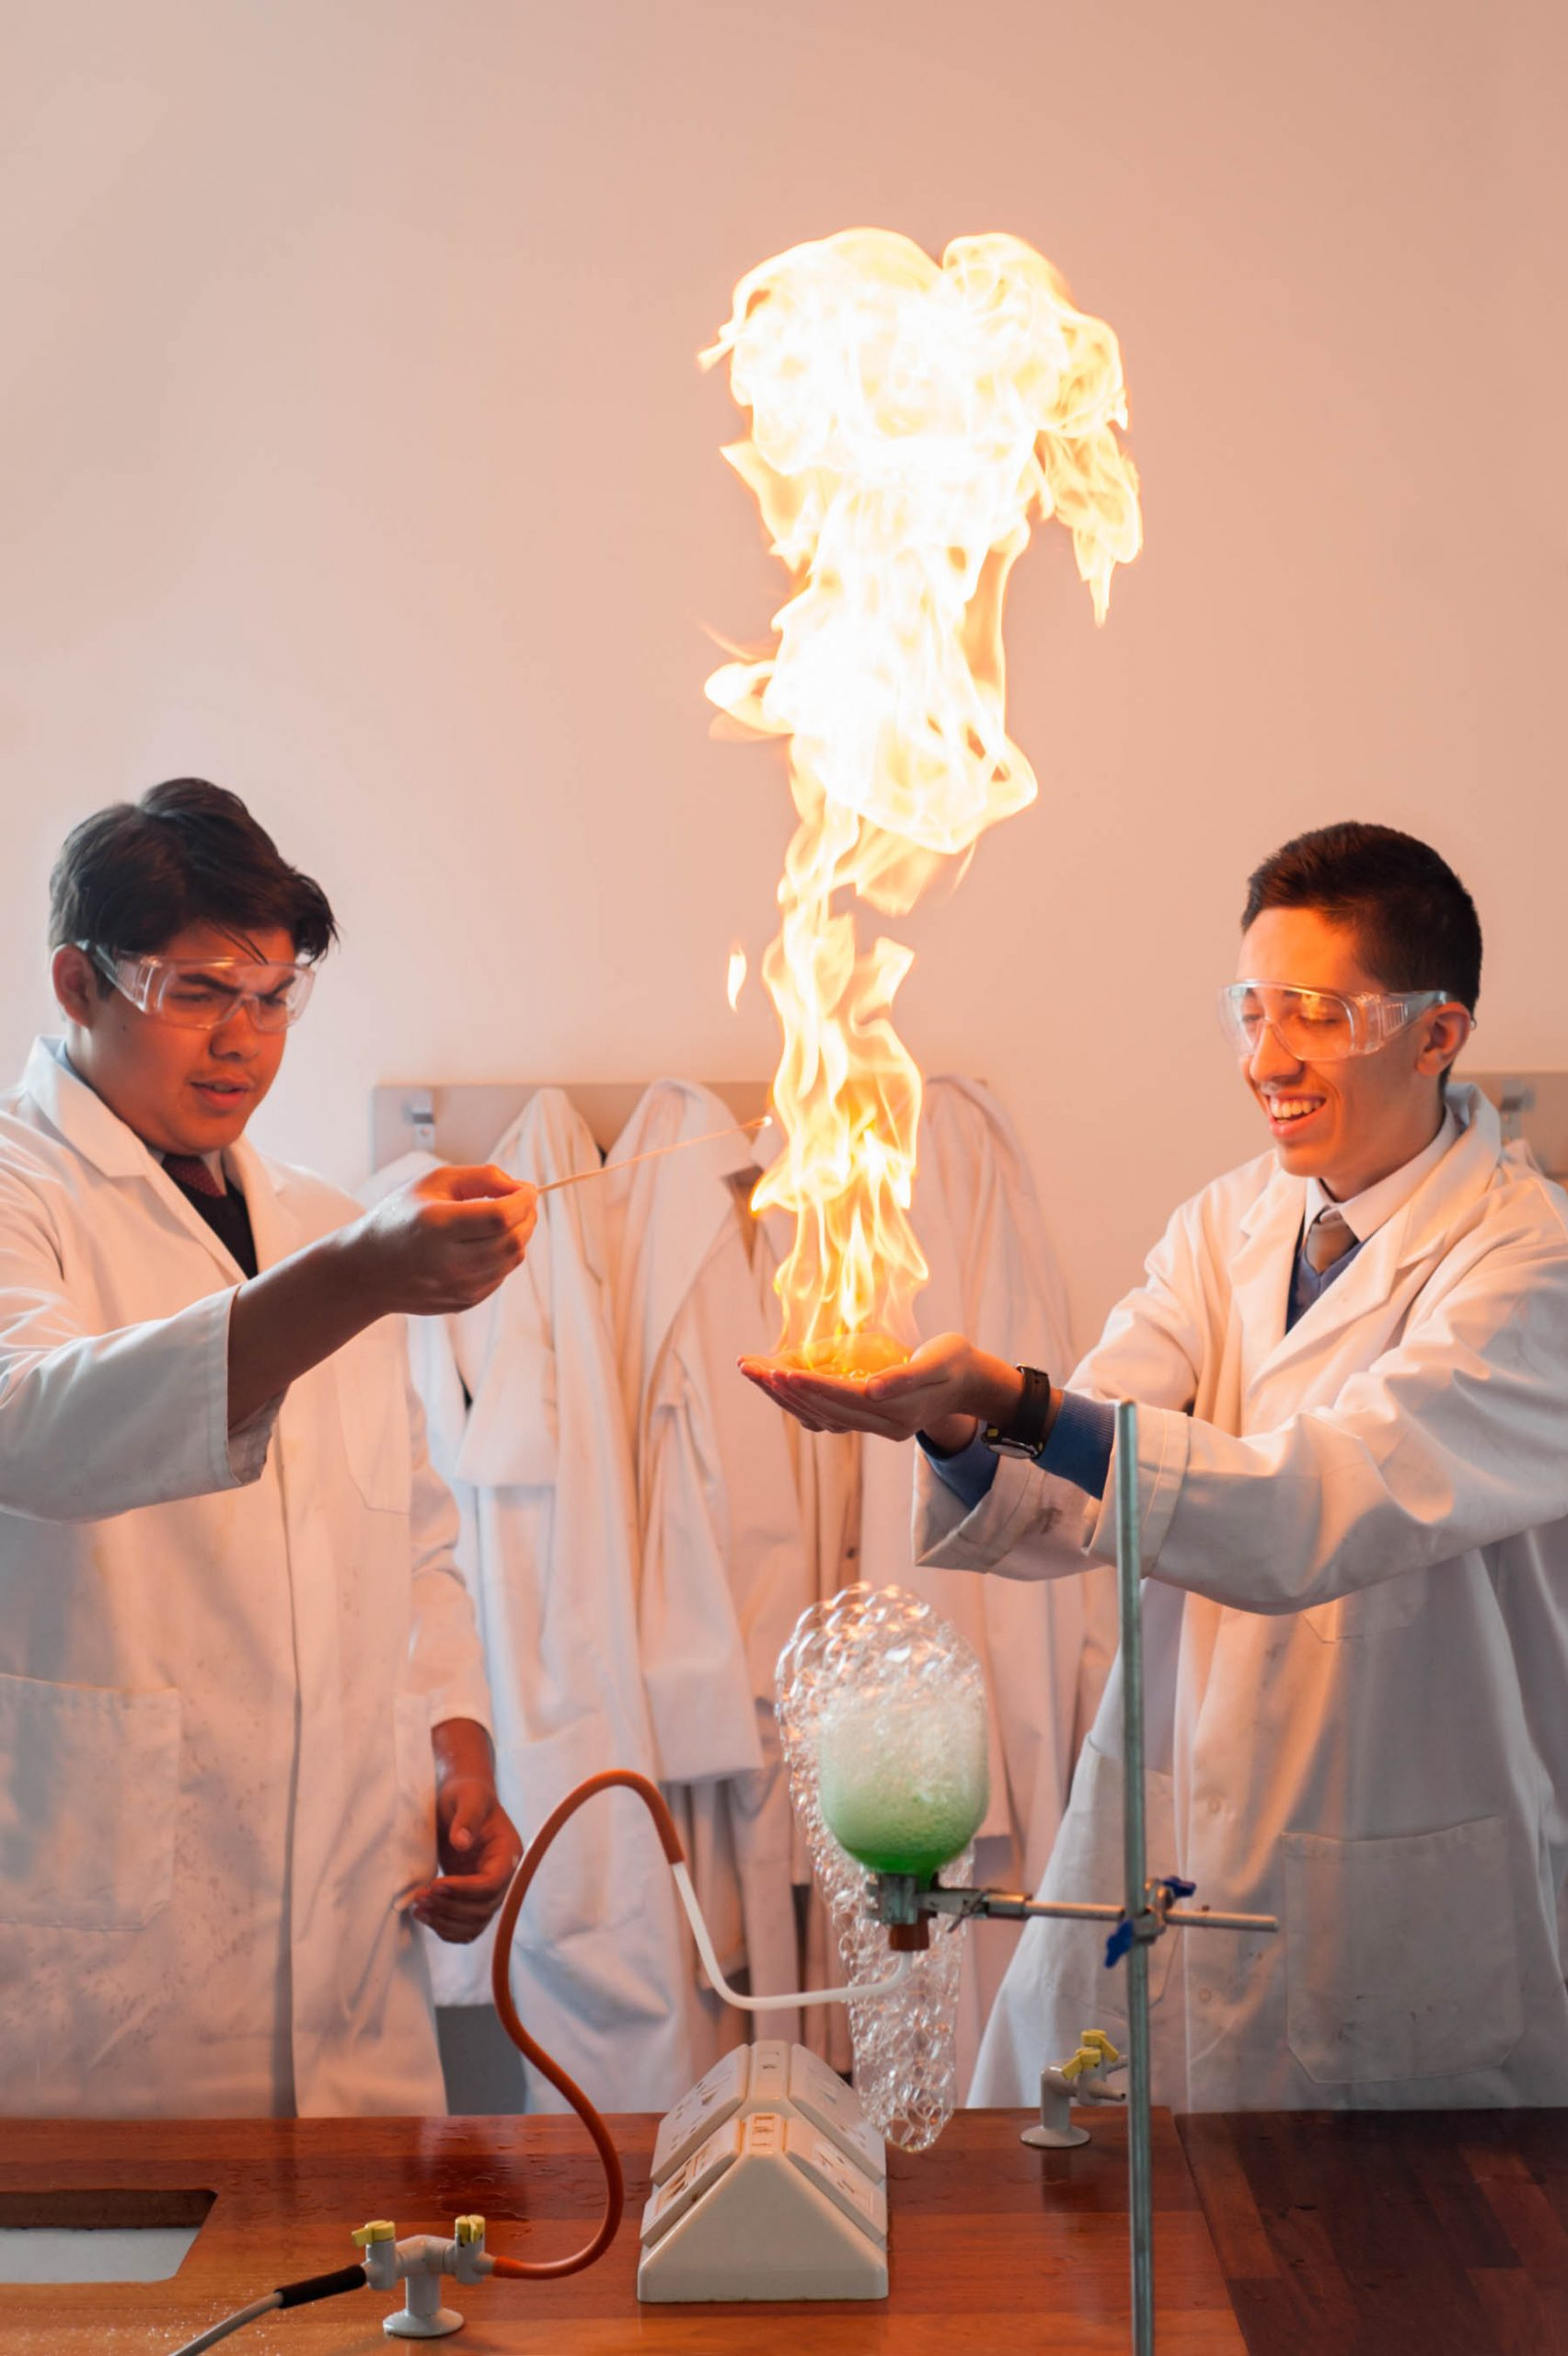 Academy school website photography of methane bubbles on fire